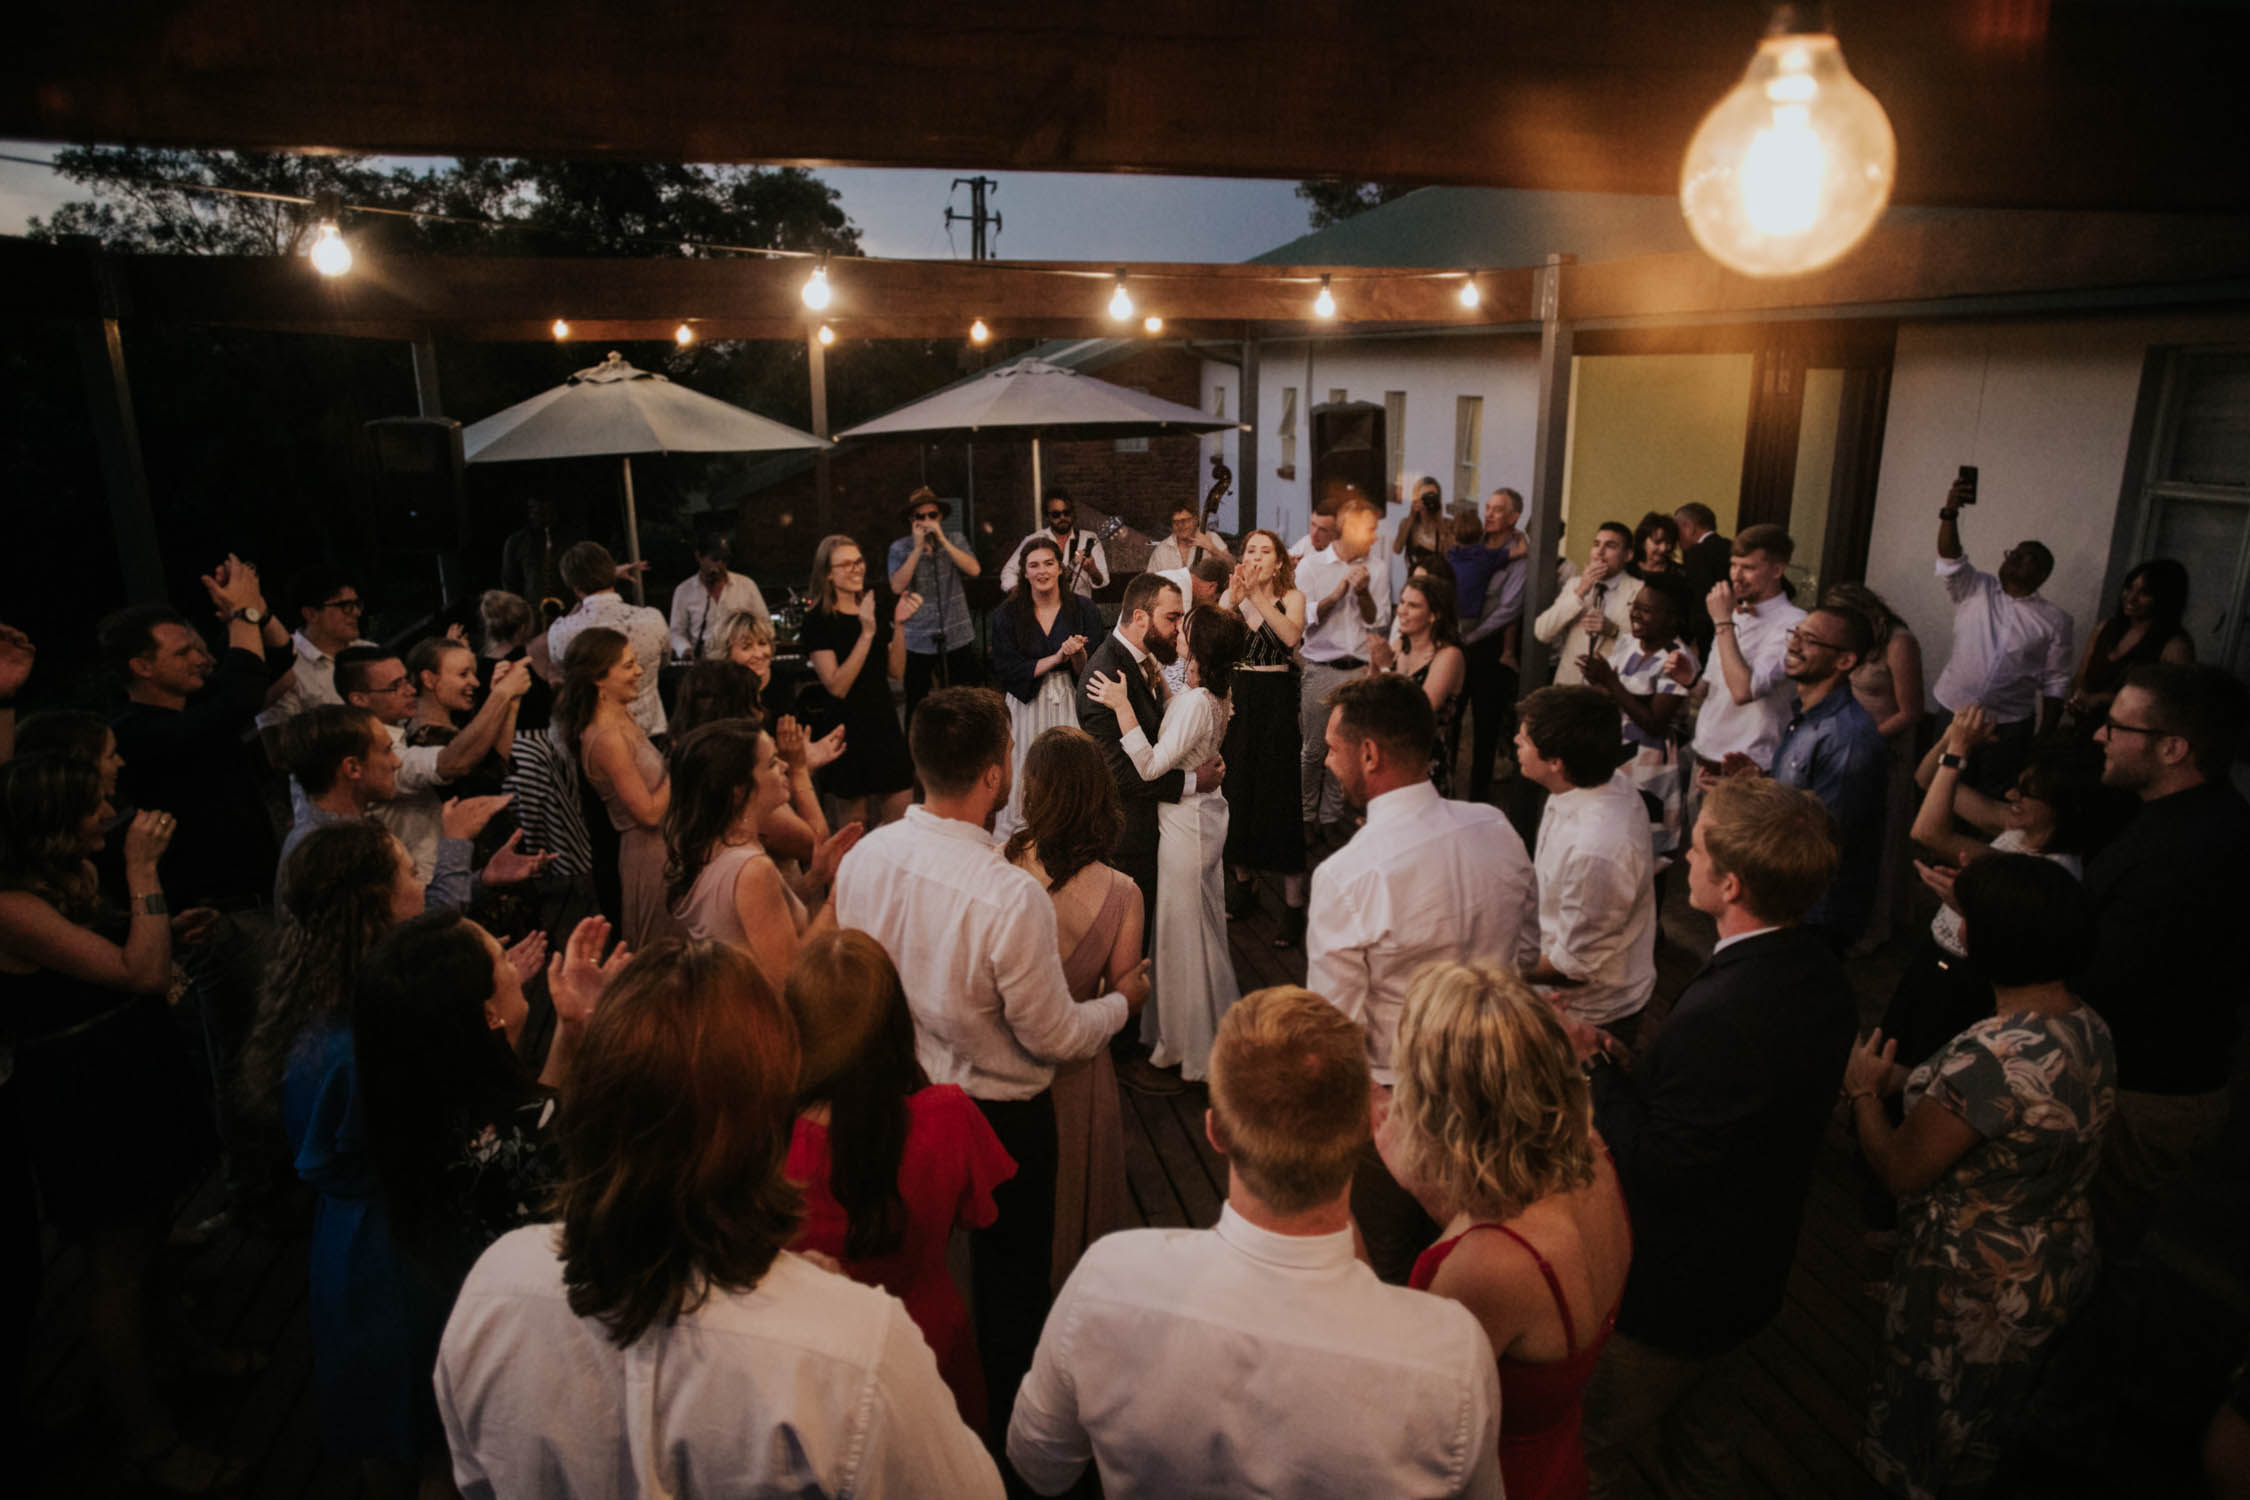 Groom and bride kiss in the middle of the outside dance floor while family and friends cheer